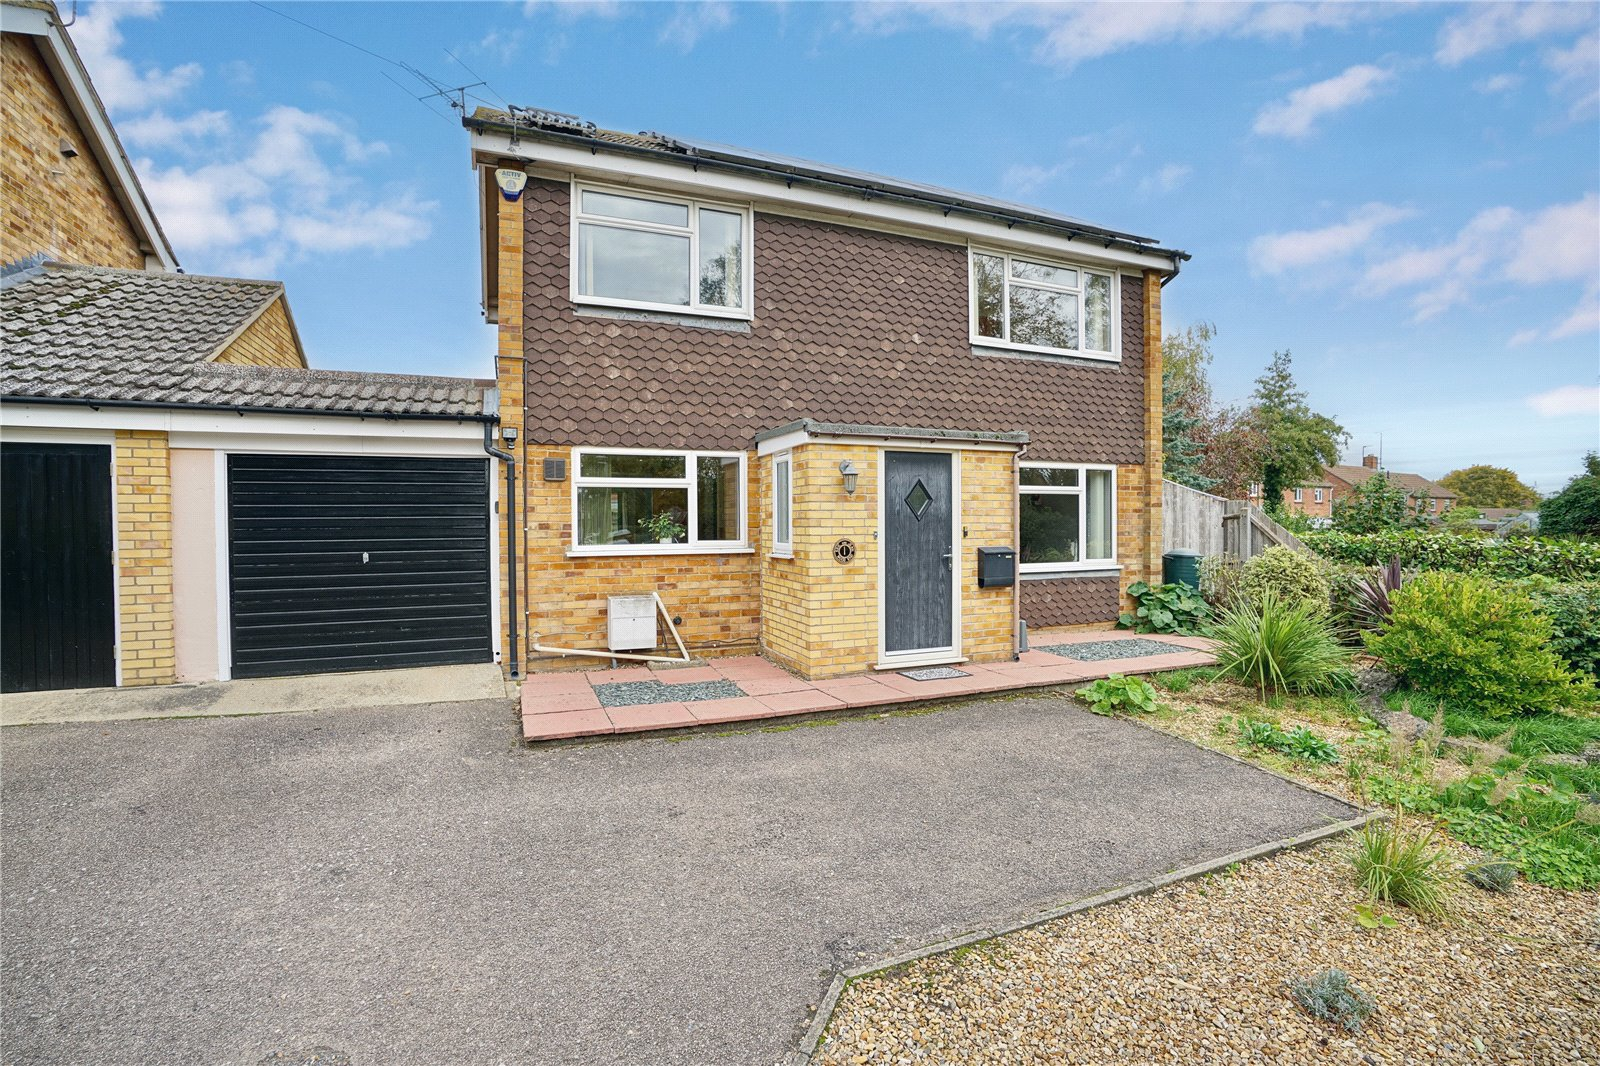 3 bed house for sale in Bluntisham, PE28 3LE - Property Image 1